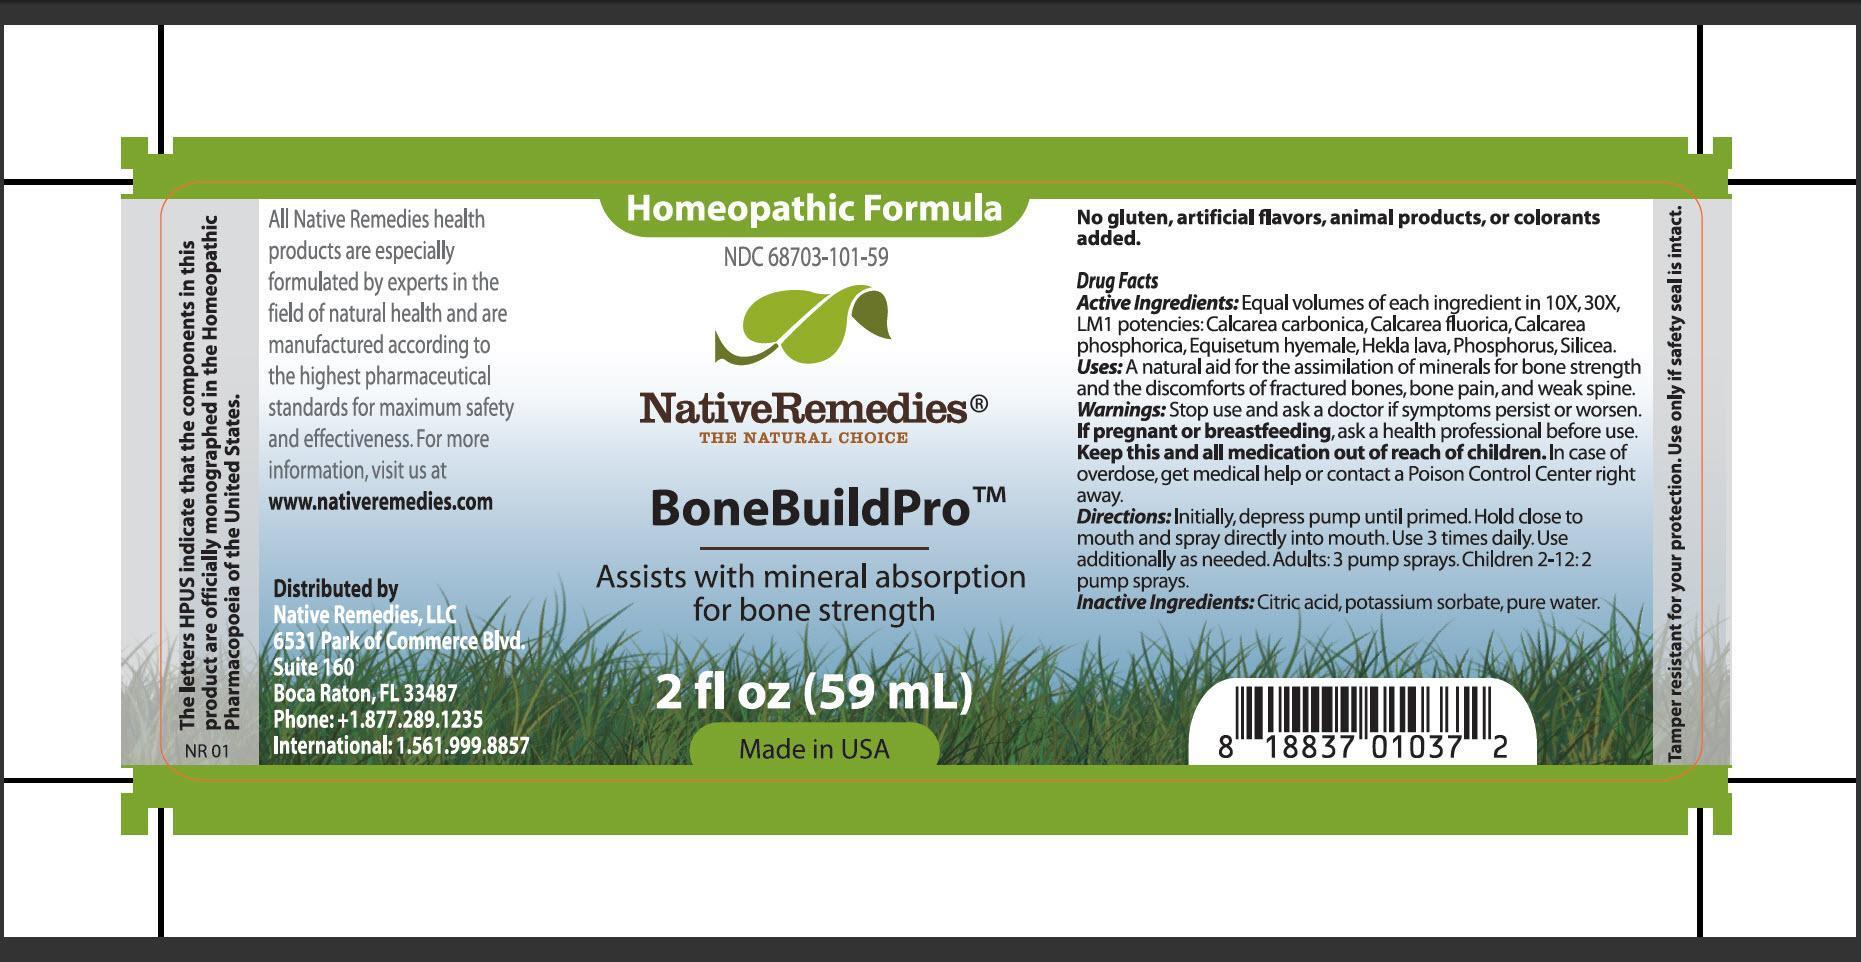 Bonebuildpro (Calcarea Carbonica, Calcarea Fluorica, Calcarea Phosphorica, Equisetum Hyemale, Hekla Lava, Phosphorus, Silicea) Spray [Native Remedies, Llc]